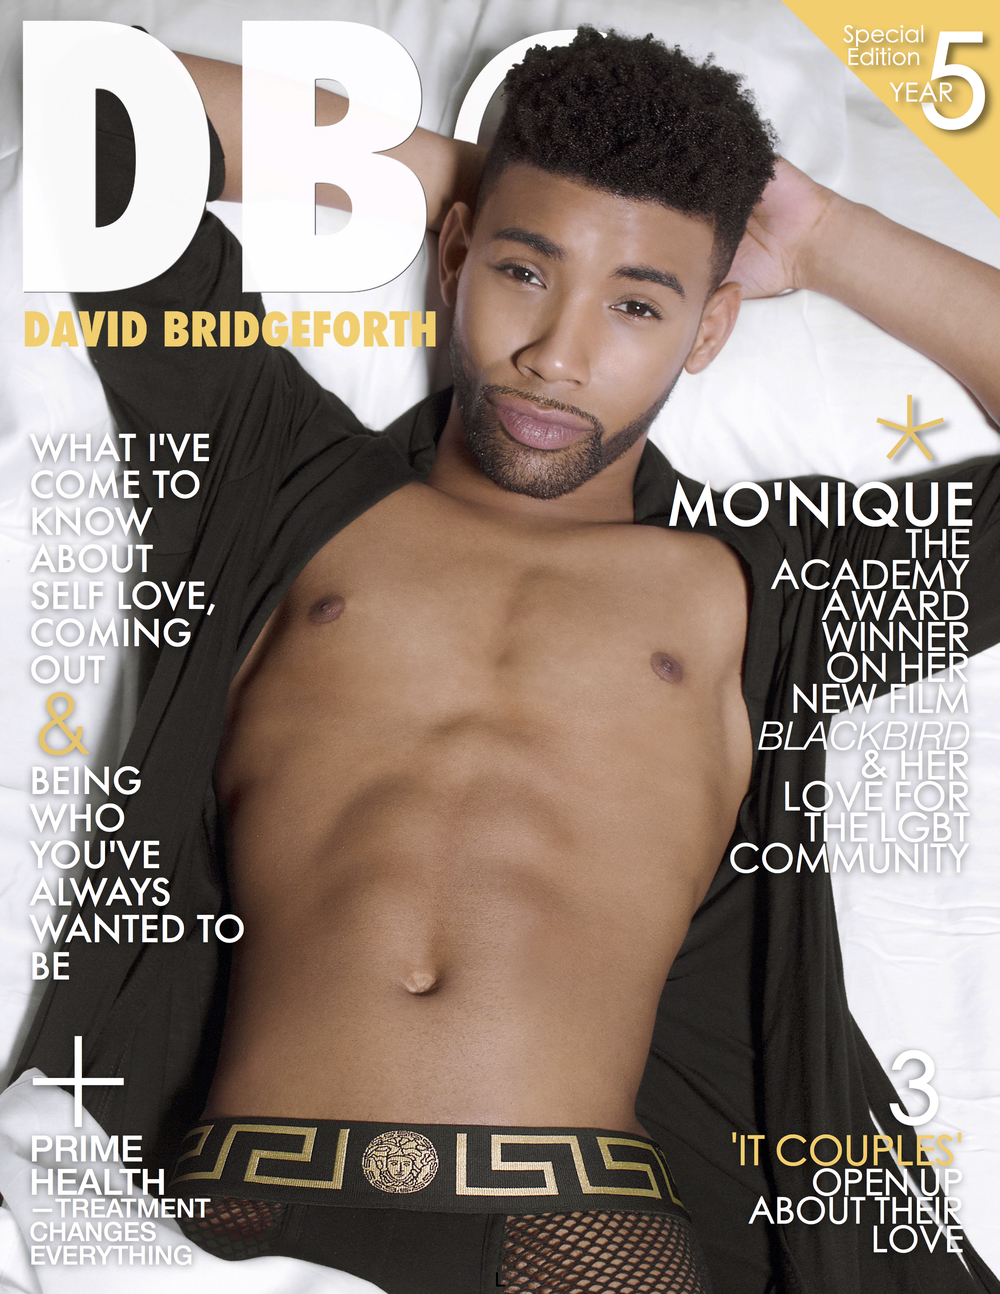 DBQ Magazine April 2015 Cover.jpg